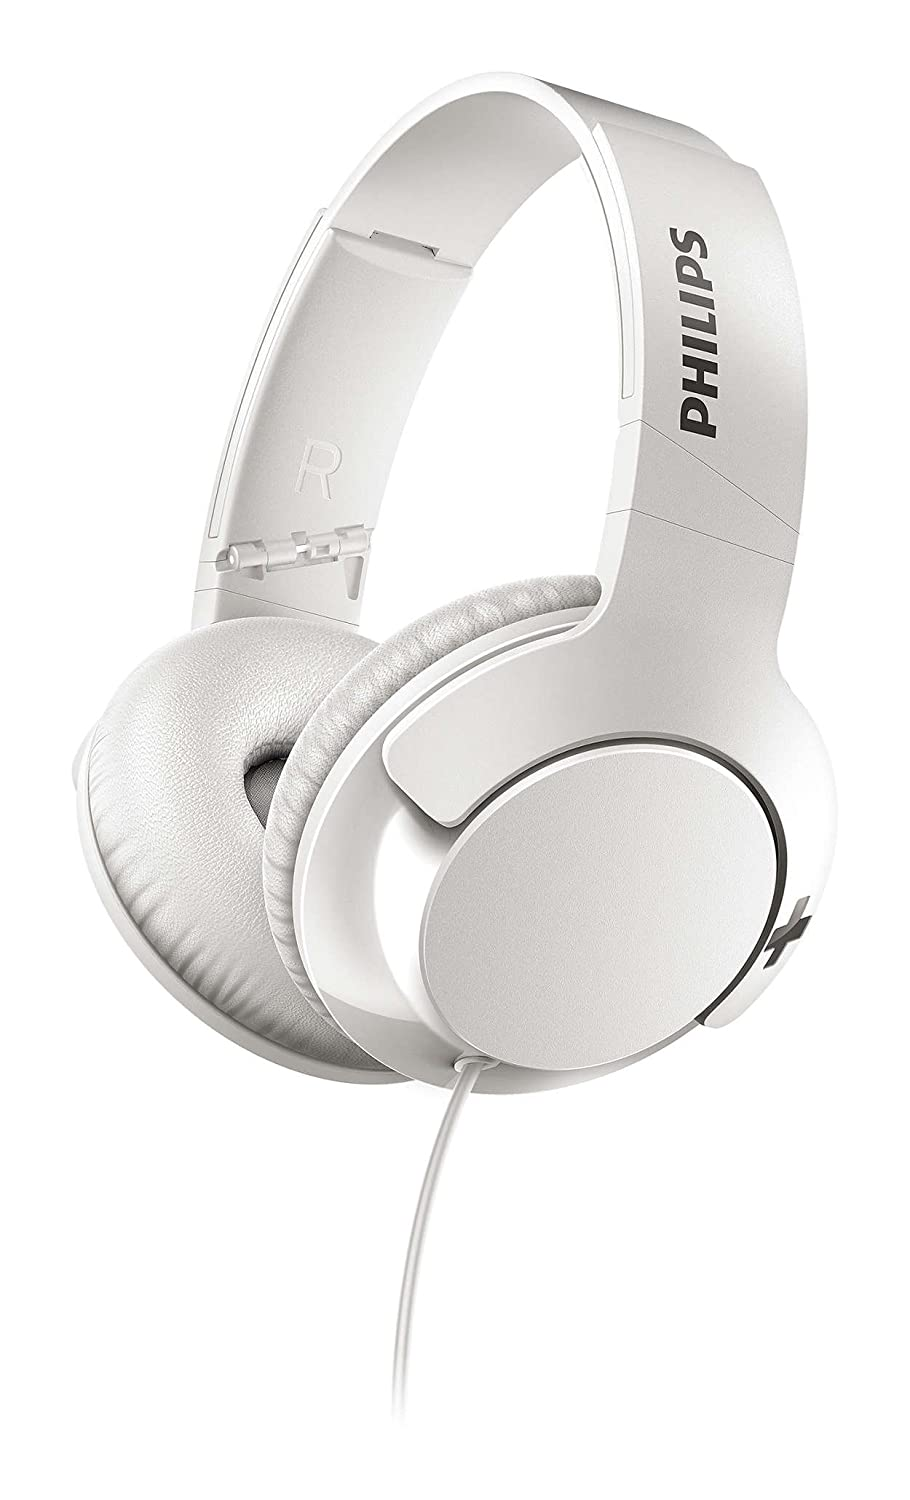 [amazon.de] Philips Bass+ Over Ear Slušalice za 11,99€ umjesto 25€